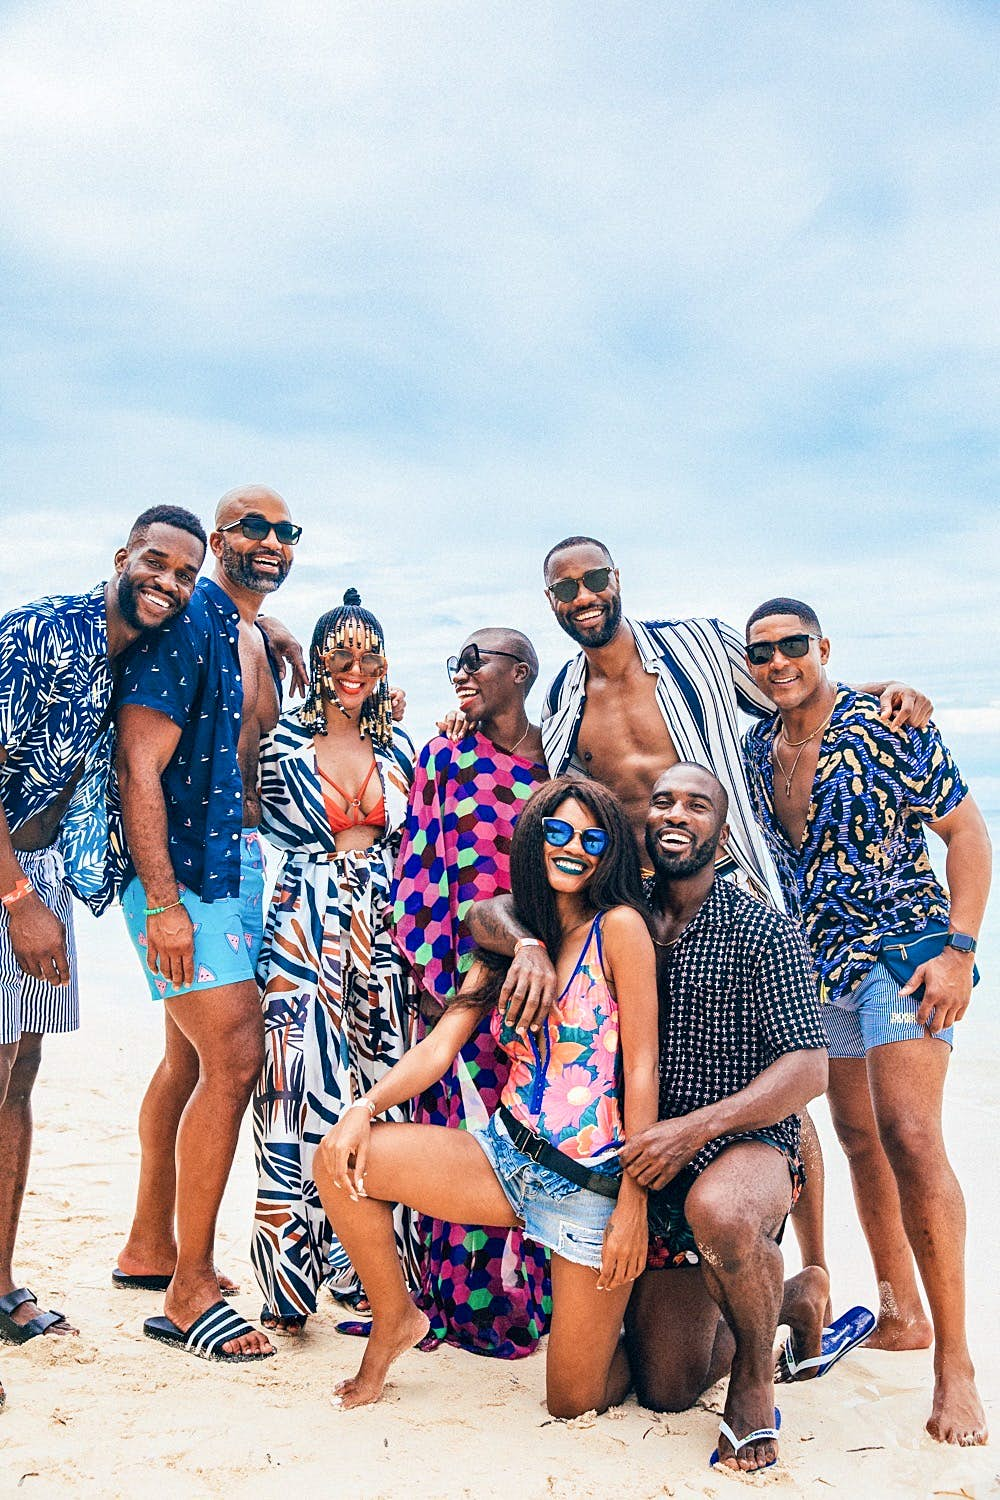 A group of people smiling and posing on the beach, in the Seychelles to celebrate Jessica Nabongo travelling to every country in the world